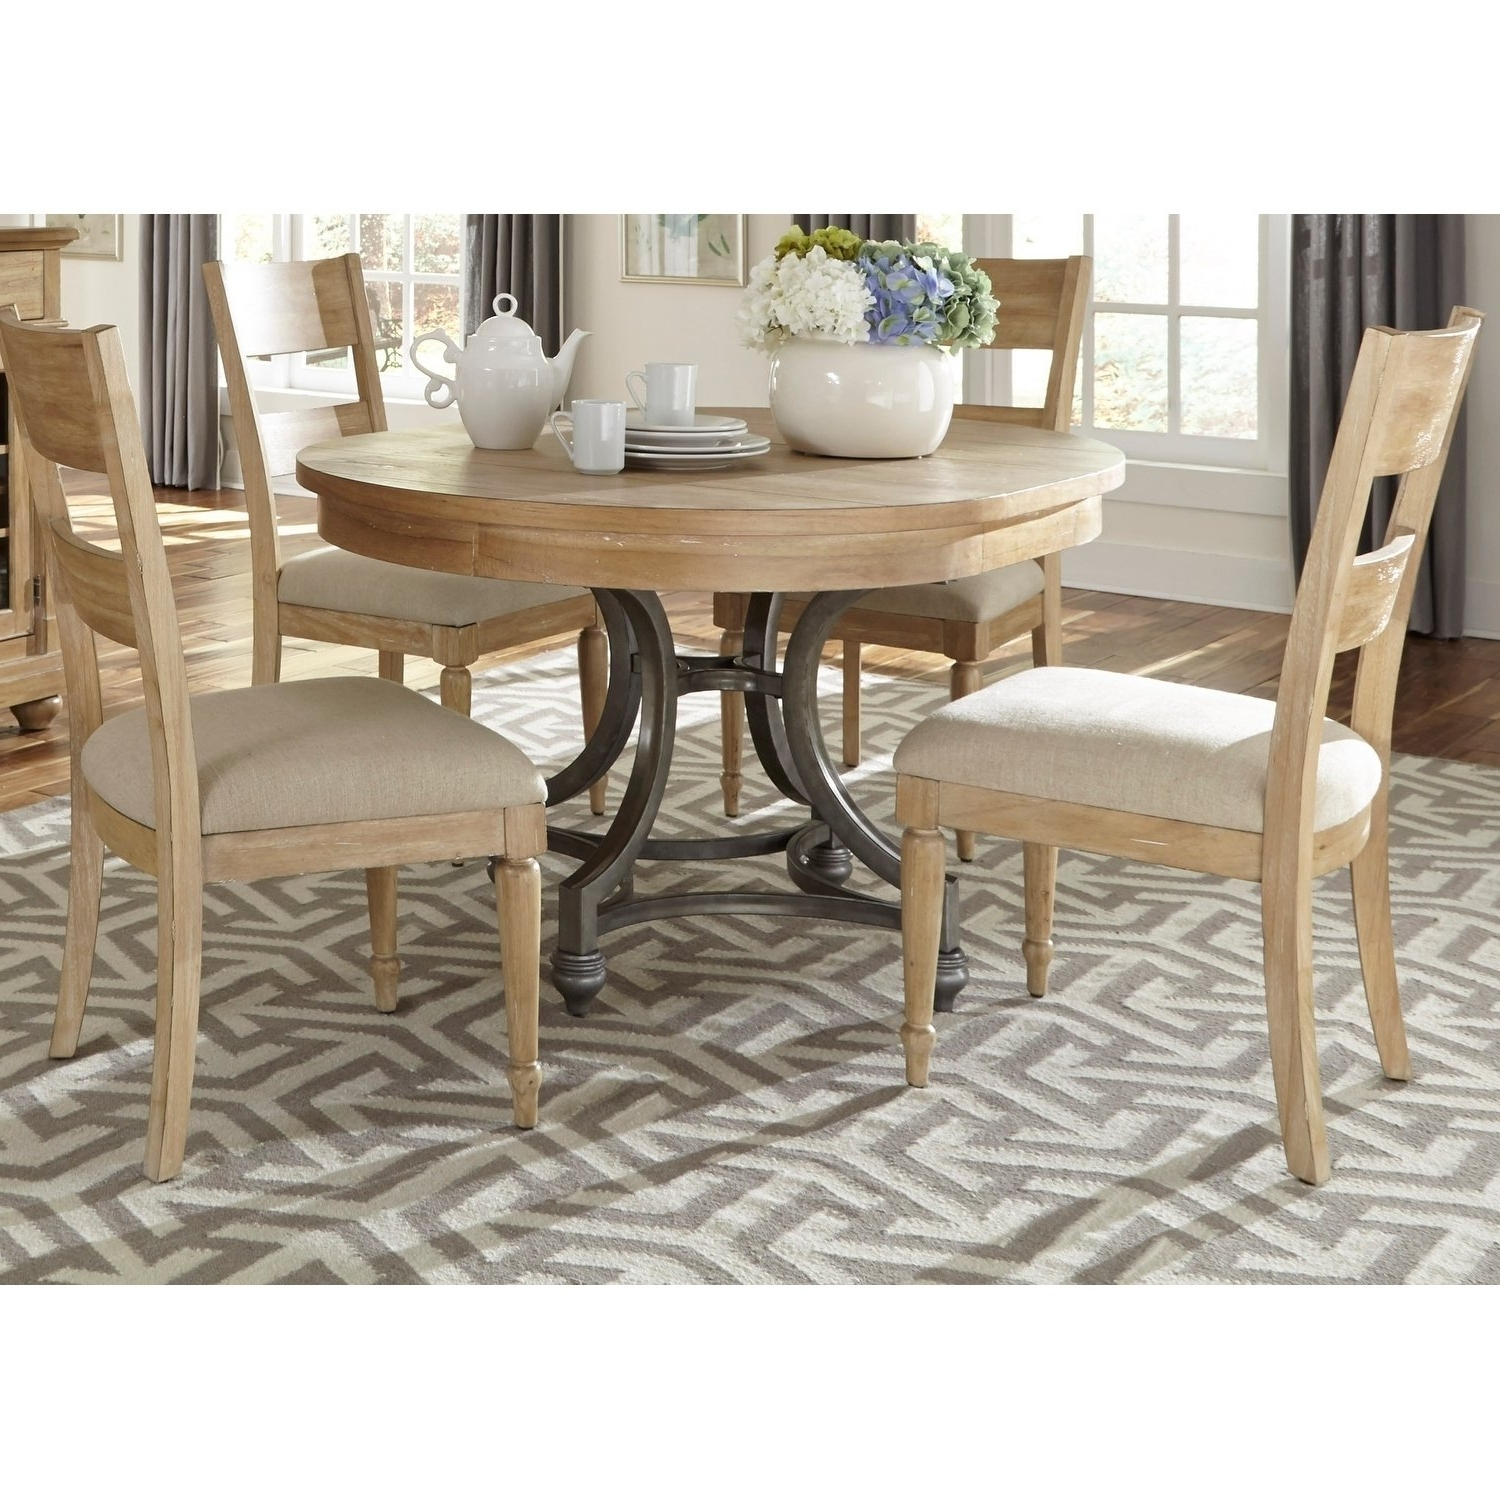 Jaxon 5 Piece Round Dining Sets With Upholstered Chairs Within Most Up To Date Shop Harbor View Sand 5 Piece Round Table Set – On Sale – Free (View 22 of 25)